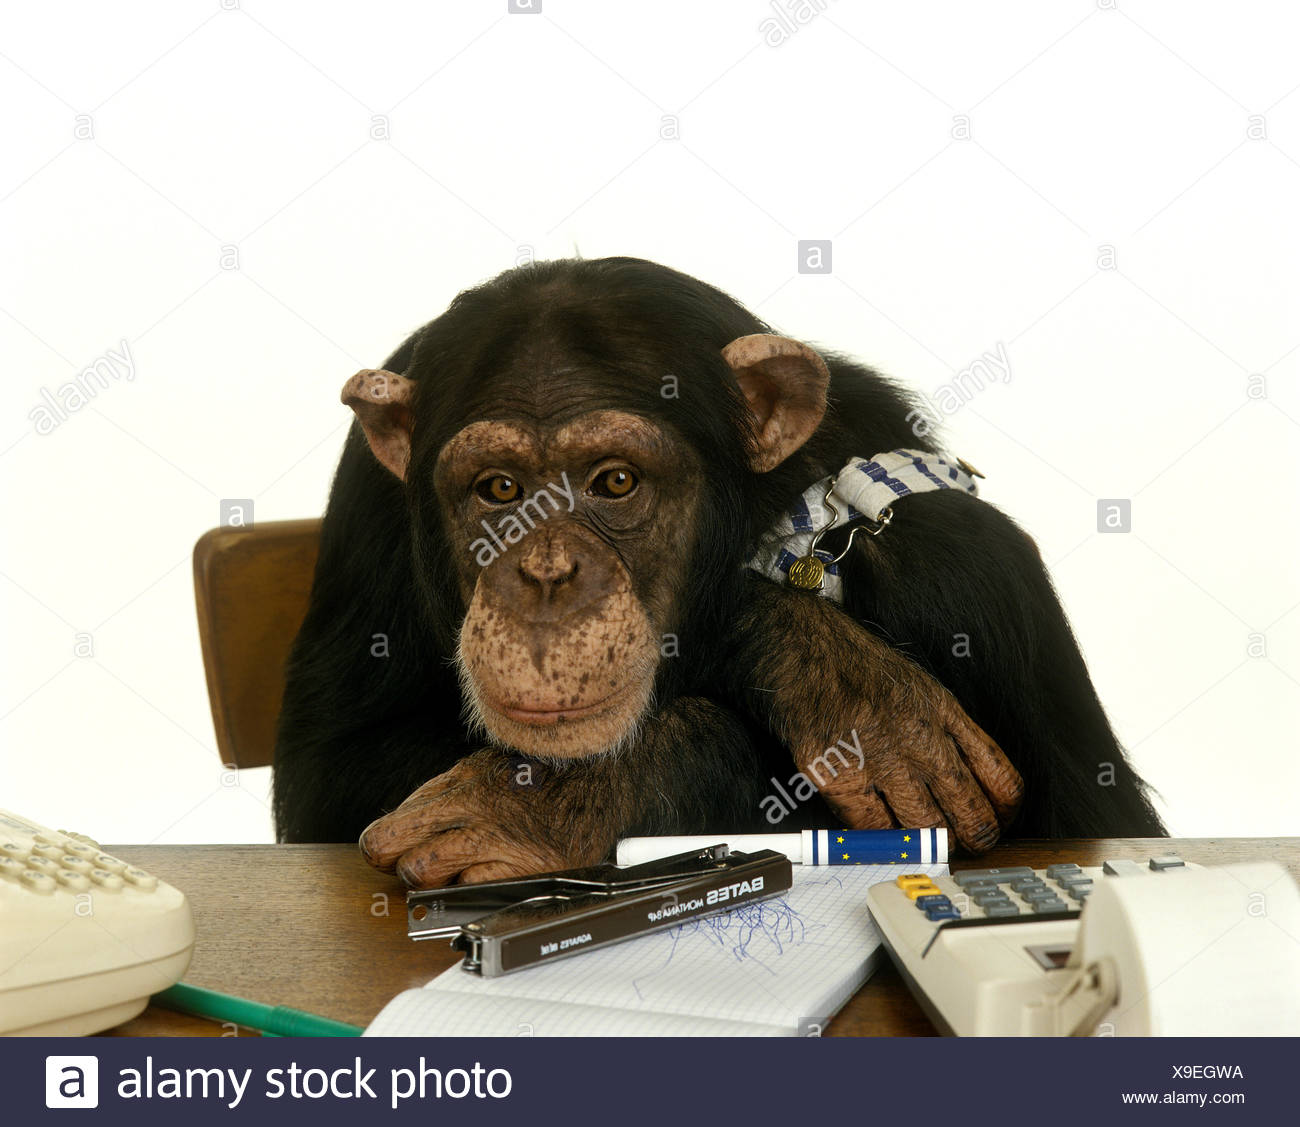 Chimpanzee, pan troglodytes, Dressed and Trained to do Like